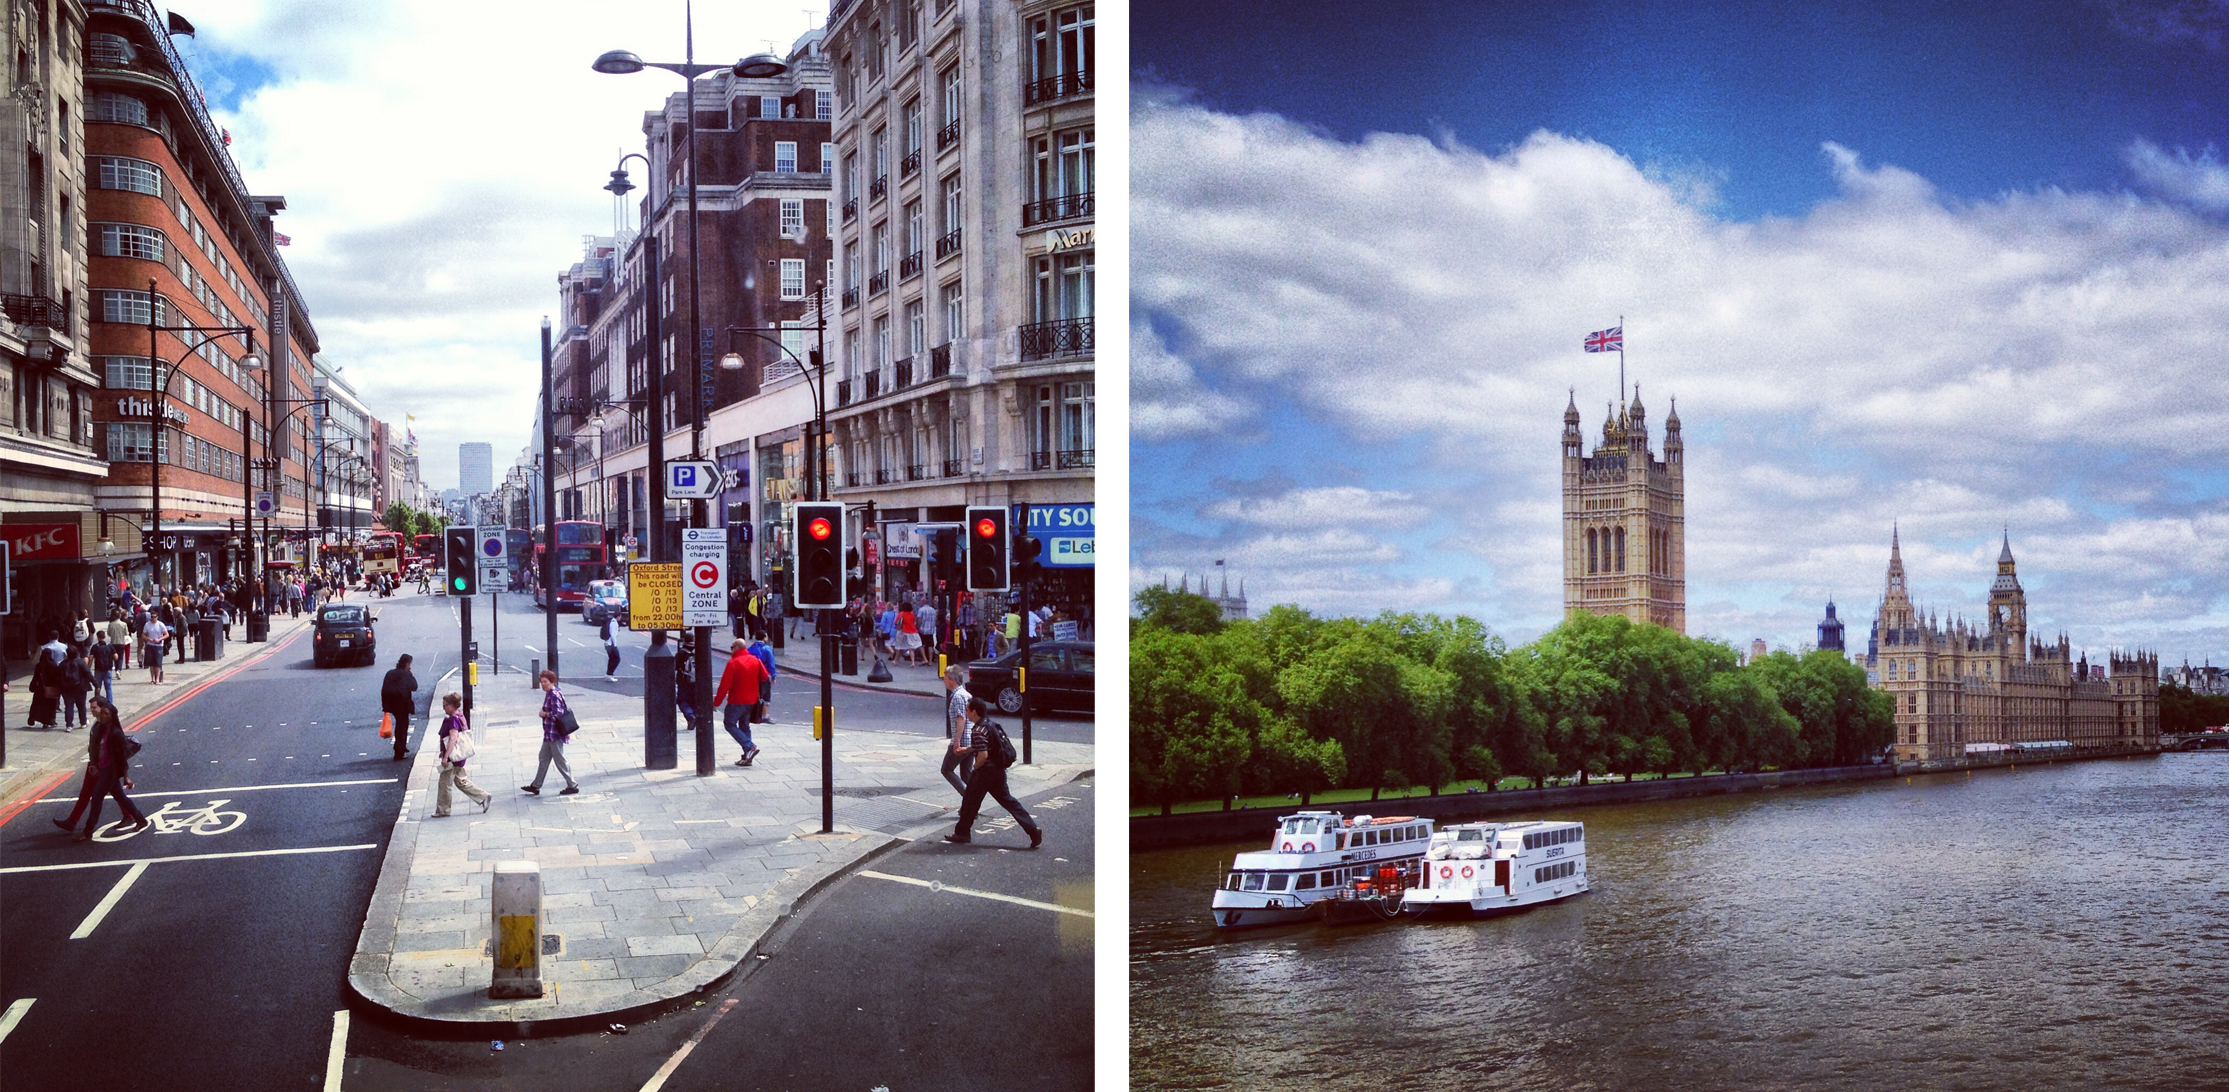 City bustle from atop a double decker bus and the River Thames on the one nice day.